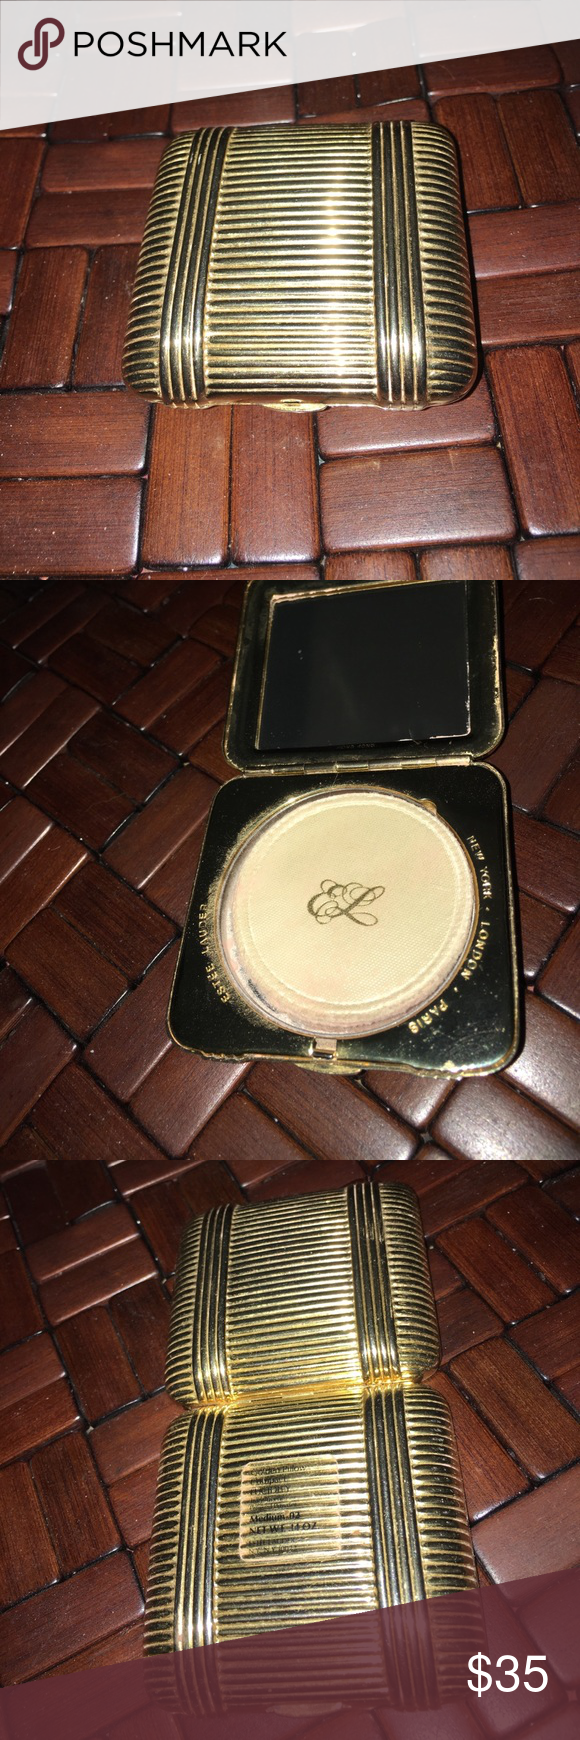 Estée Lauder golden pillow compact Collectible Estée Lauder compact ' Golden Pillow' Estee Lauder Accessories